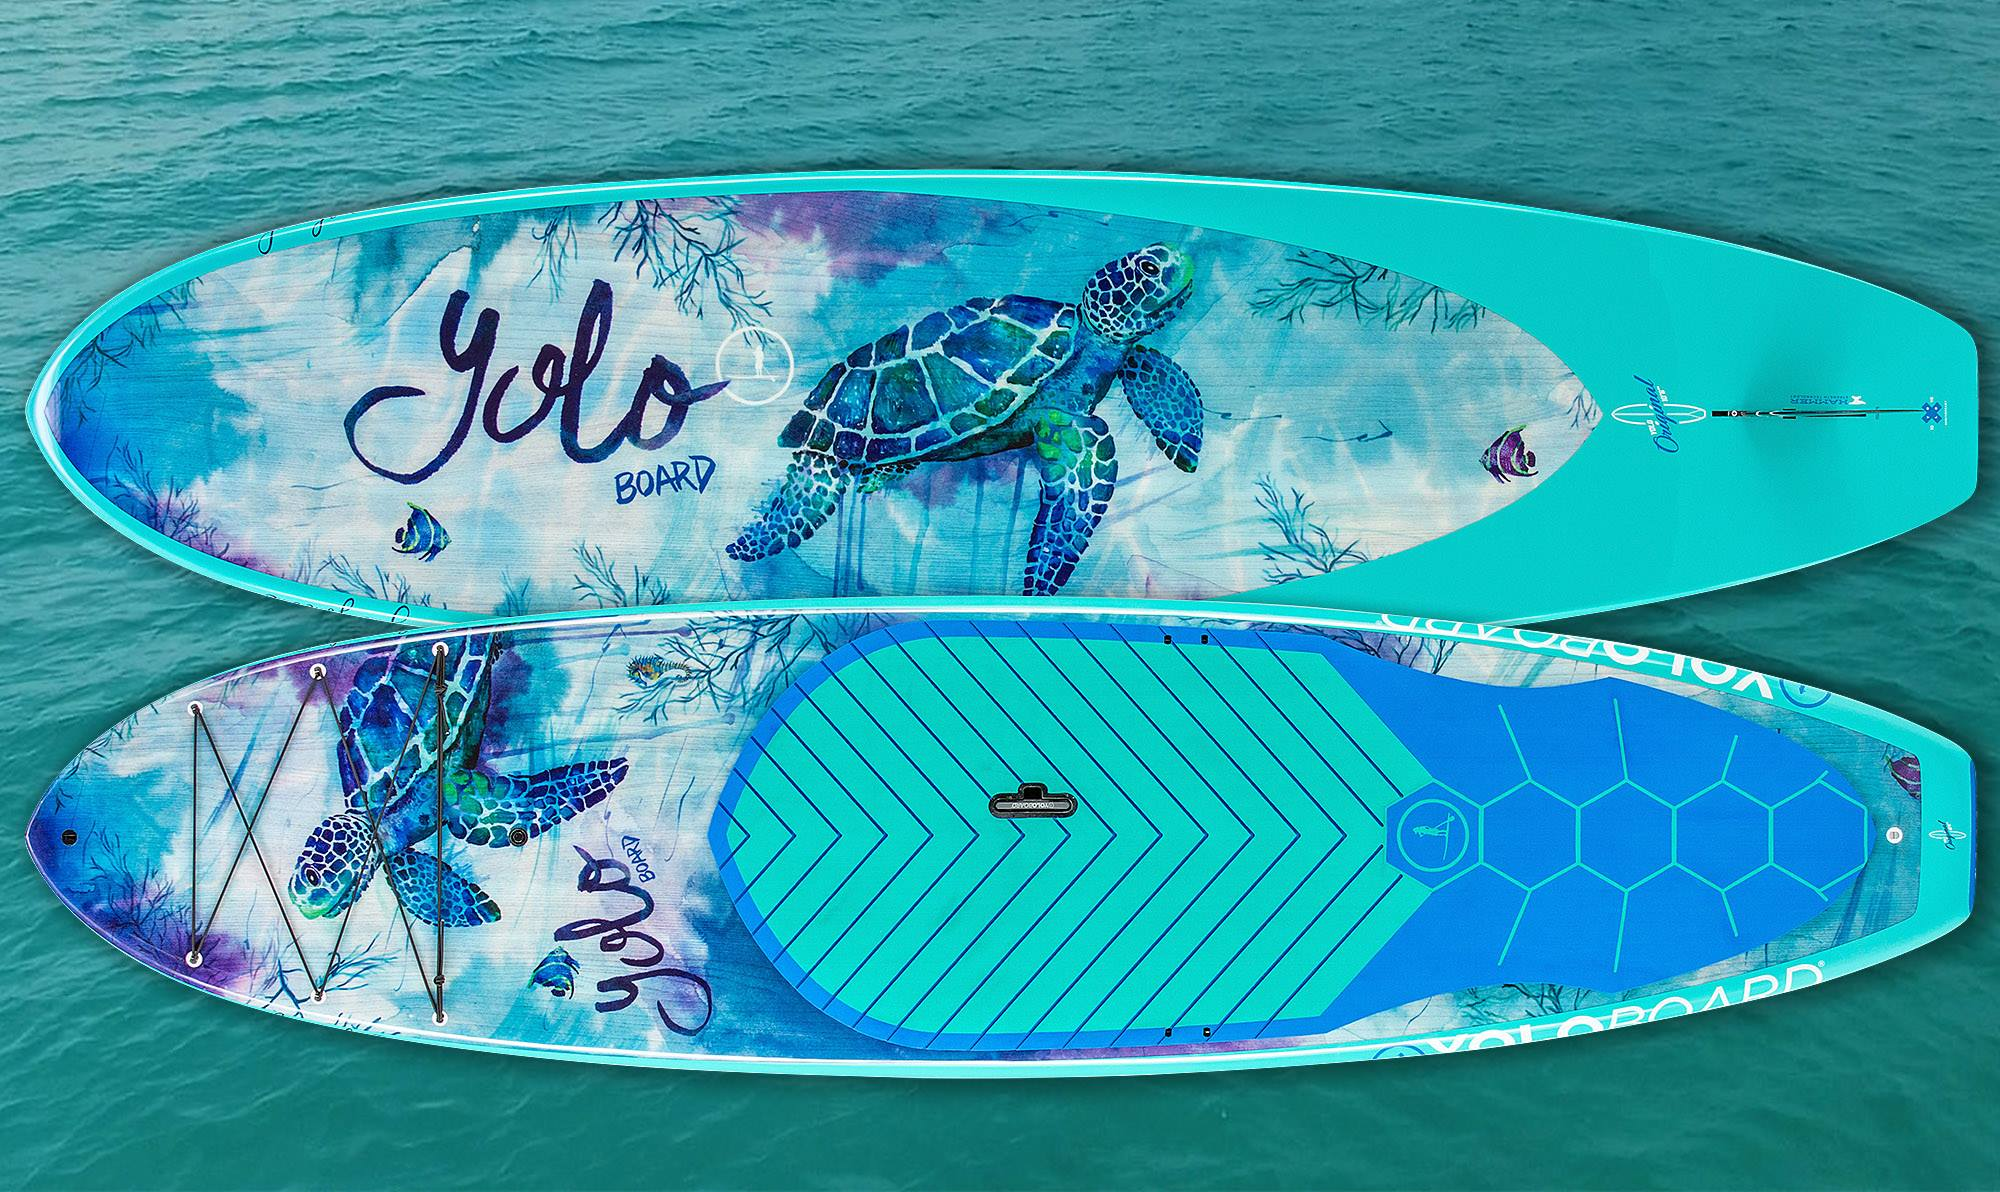 Yoloboard Turtle bay by Jeremy Kennedy | kenedik.com